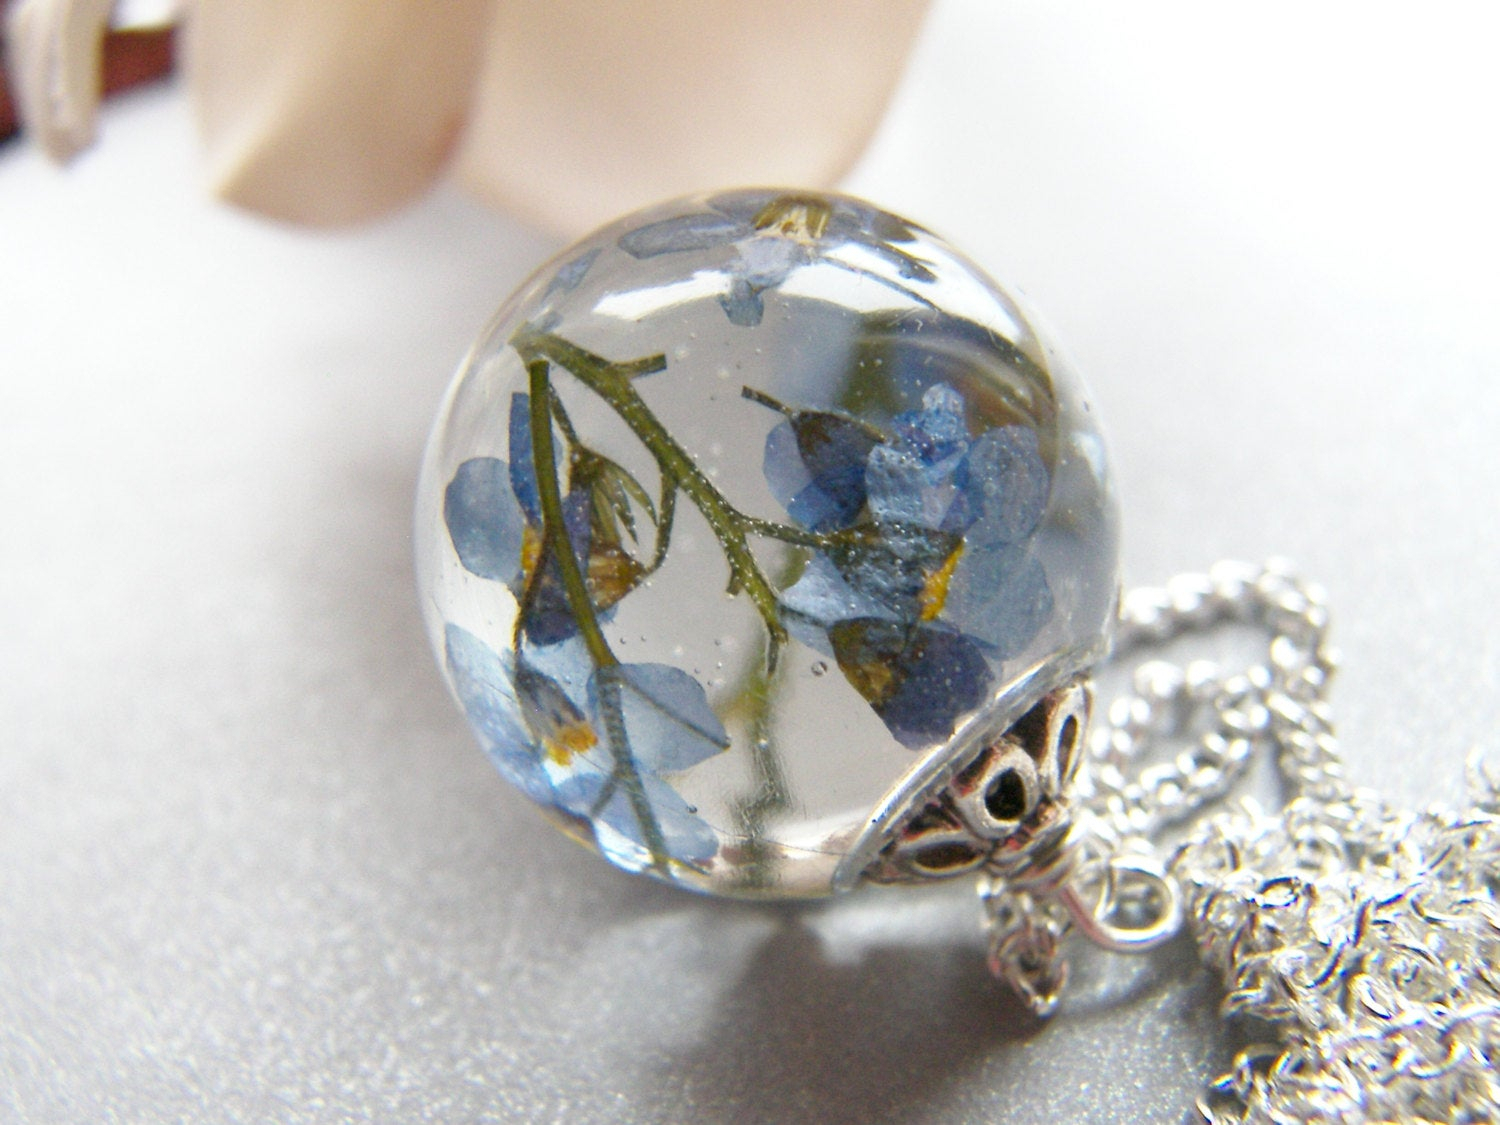 Forget Me Not Necklace, Real Flower Necklace, Resin Necklace, Something  Blue, Remembrance Necklace, Mothers Day Gift Intended For Recent Forget Me Not Necklaces (Gallery 18 of 25)